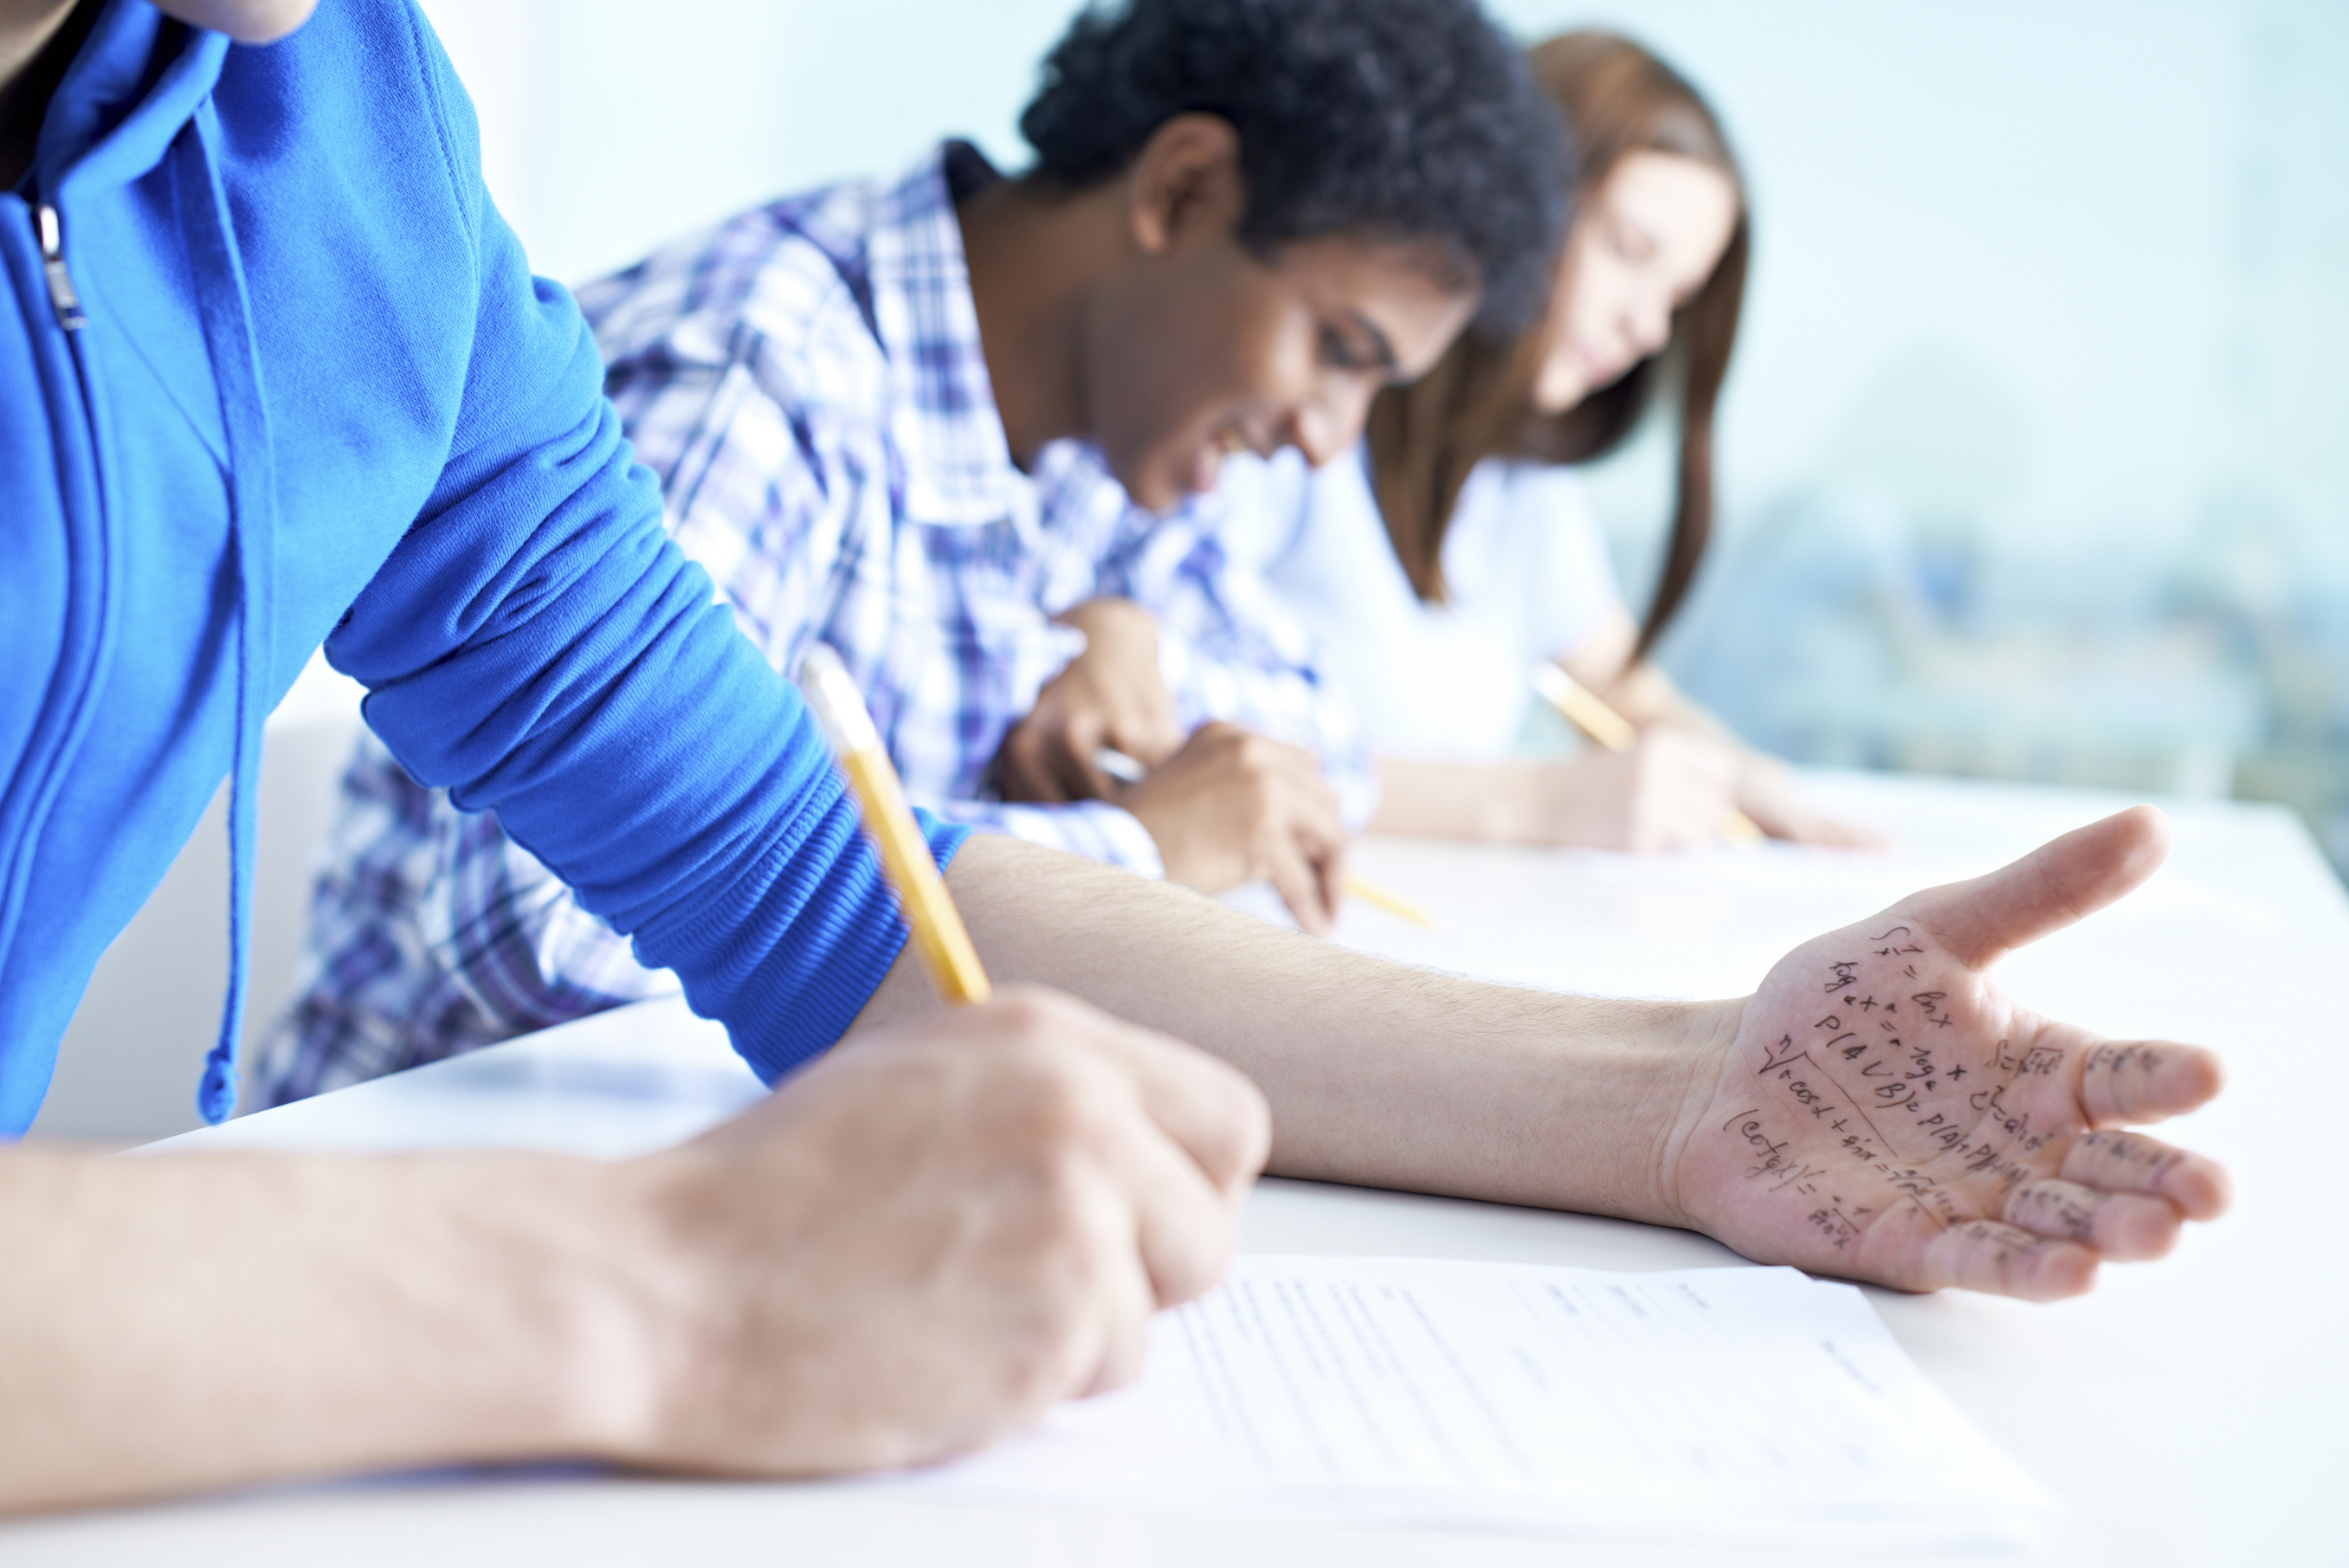 More students cheat in exams, and most are in Auckland - NZ Herald